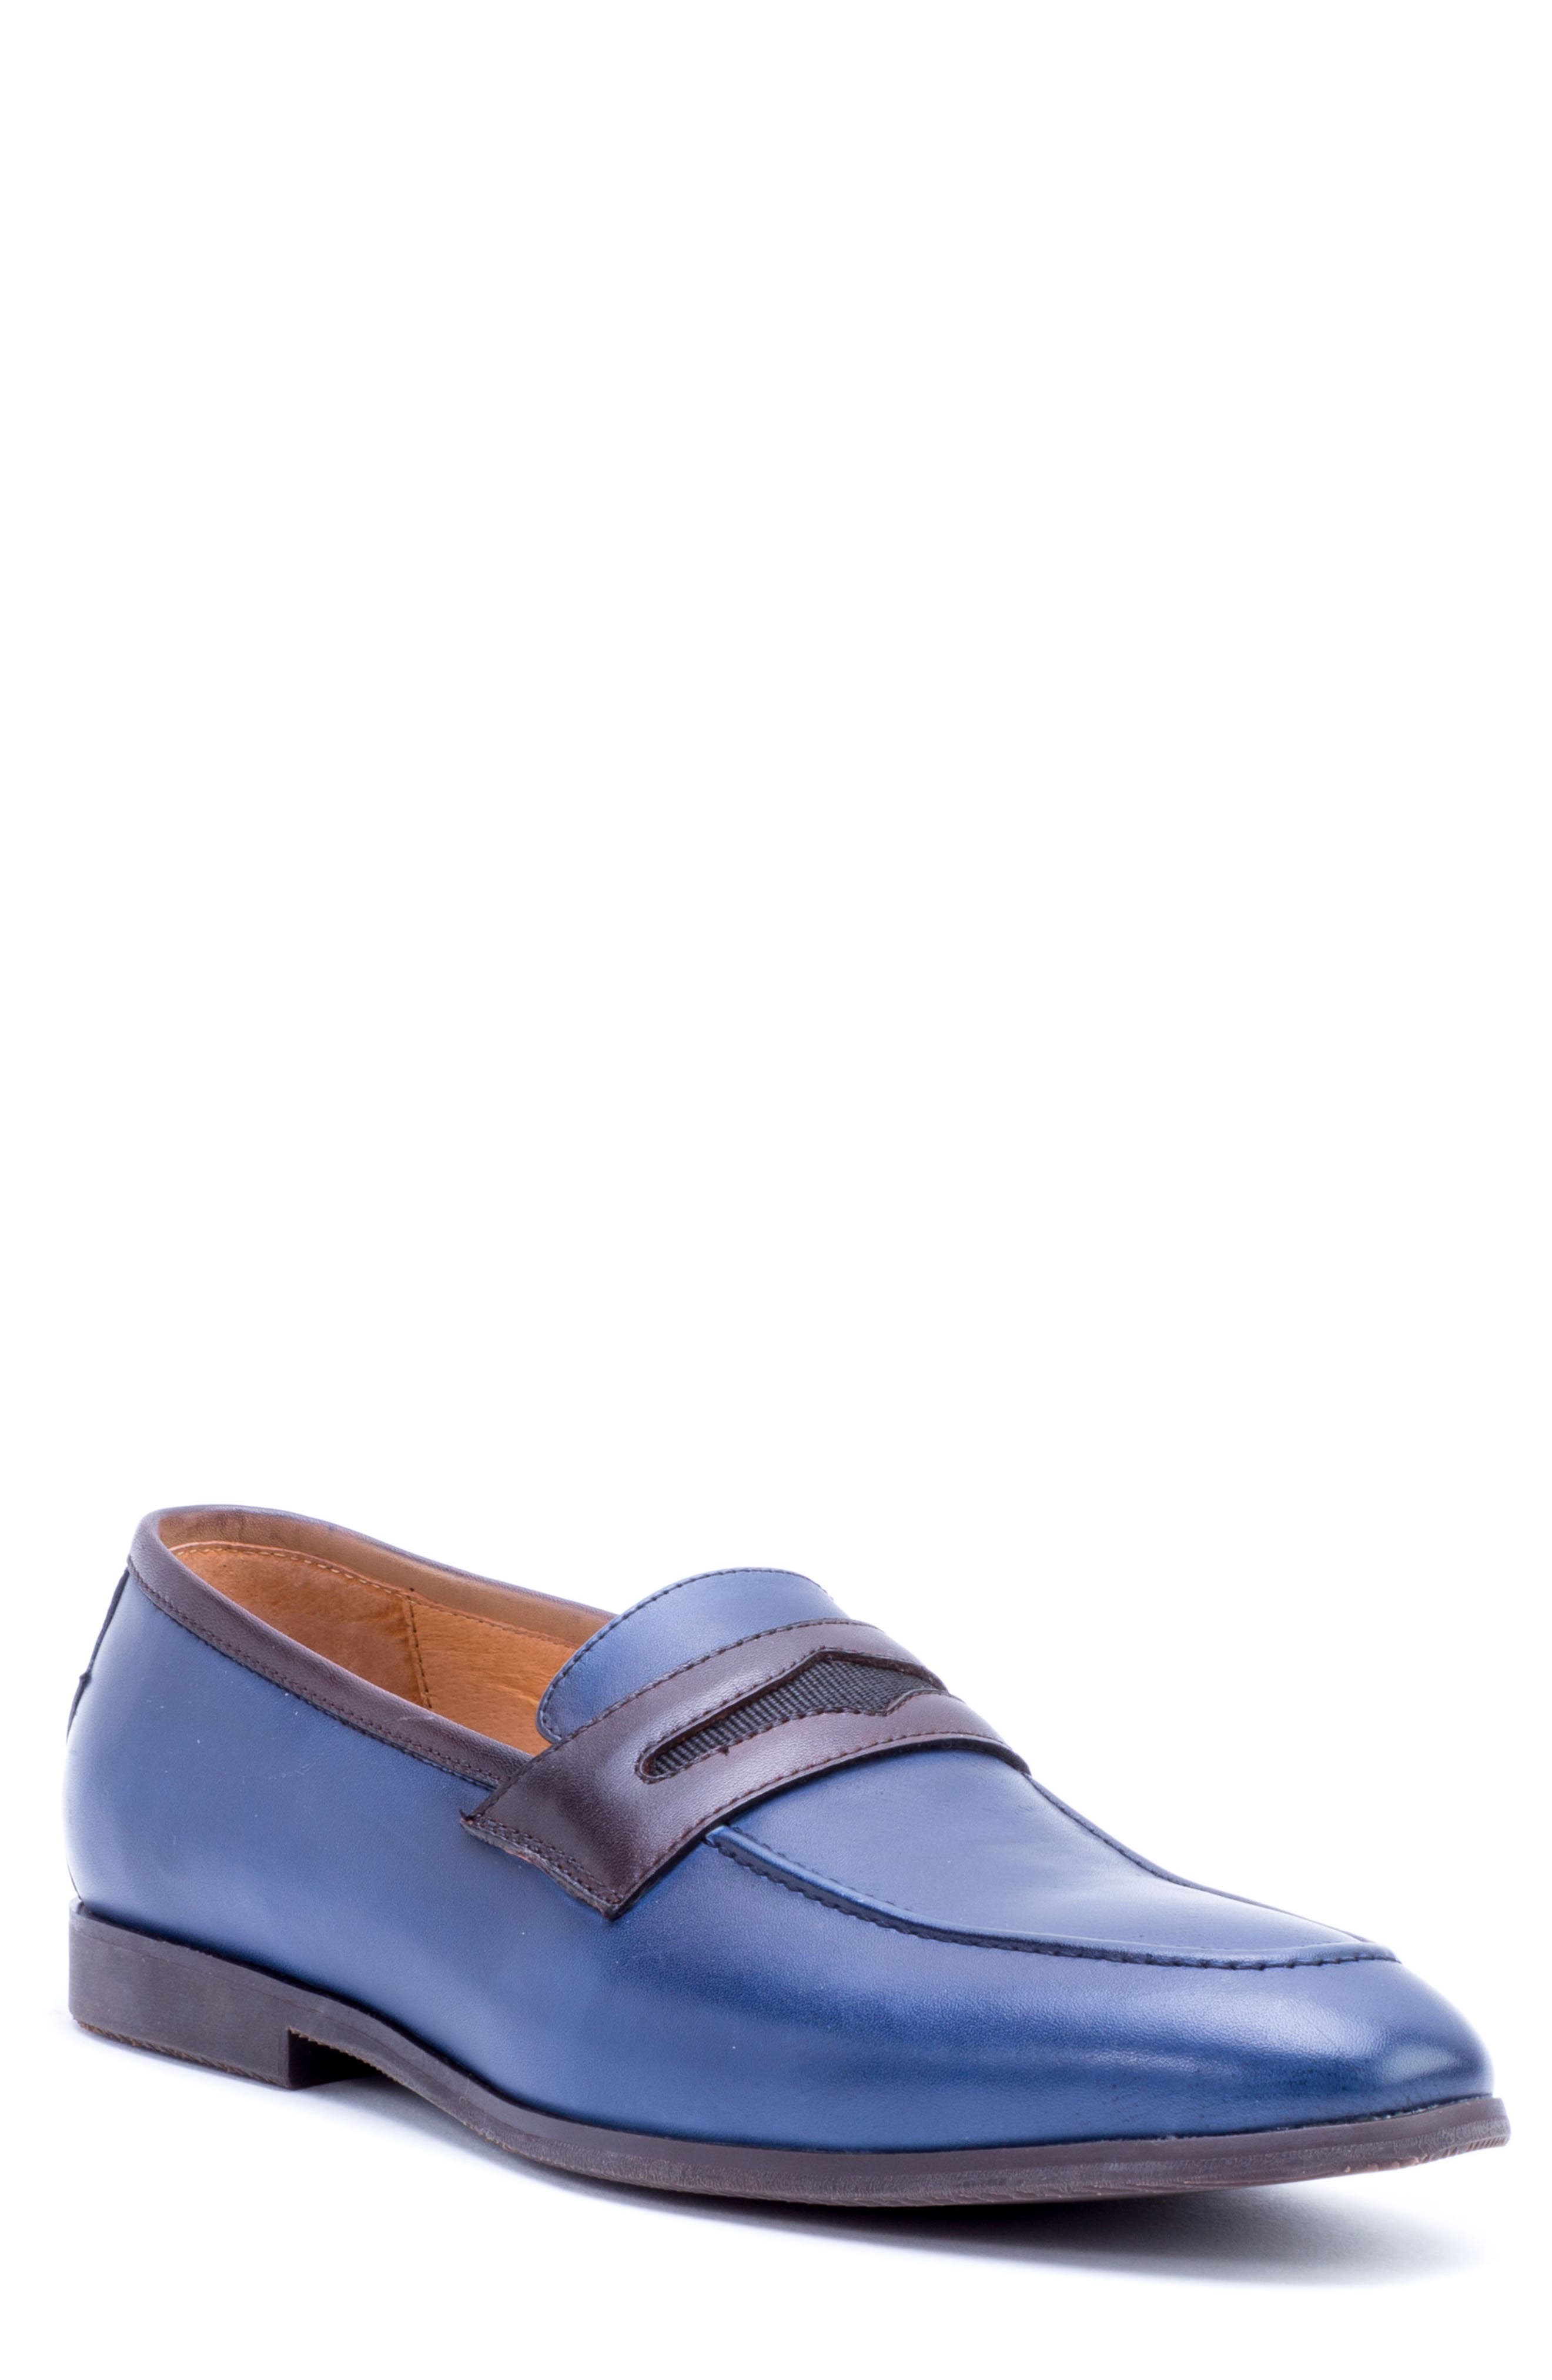 Apron Toe Penny Loafer,                         Main,                         color, Navy Leather